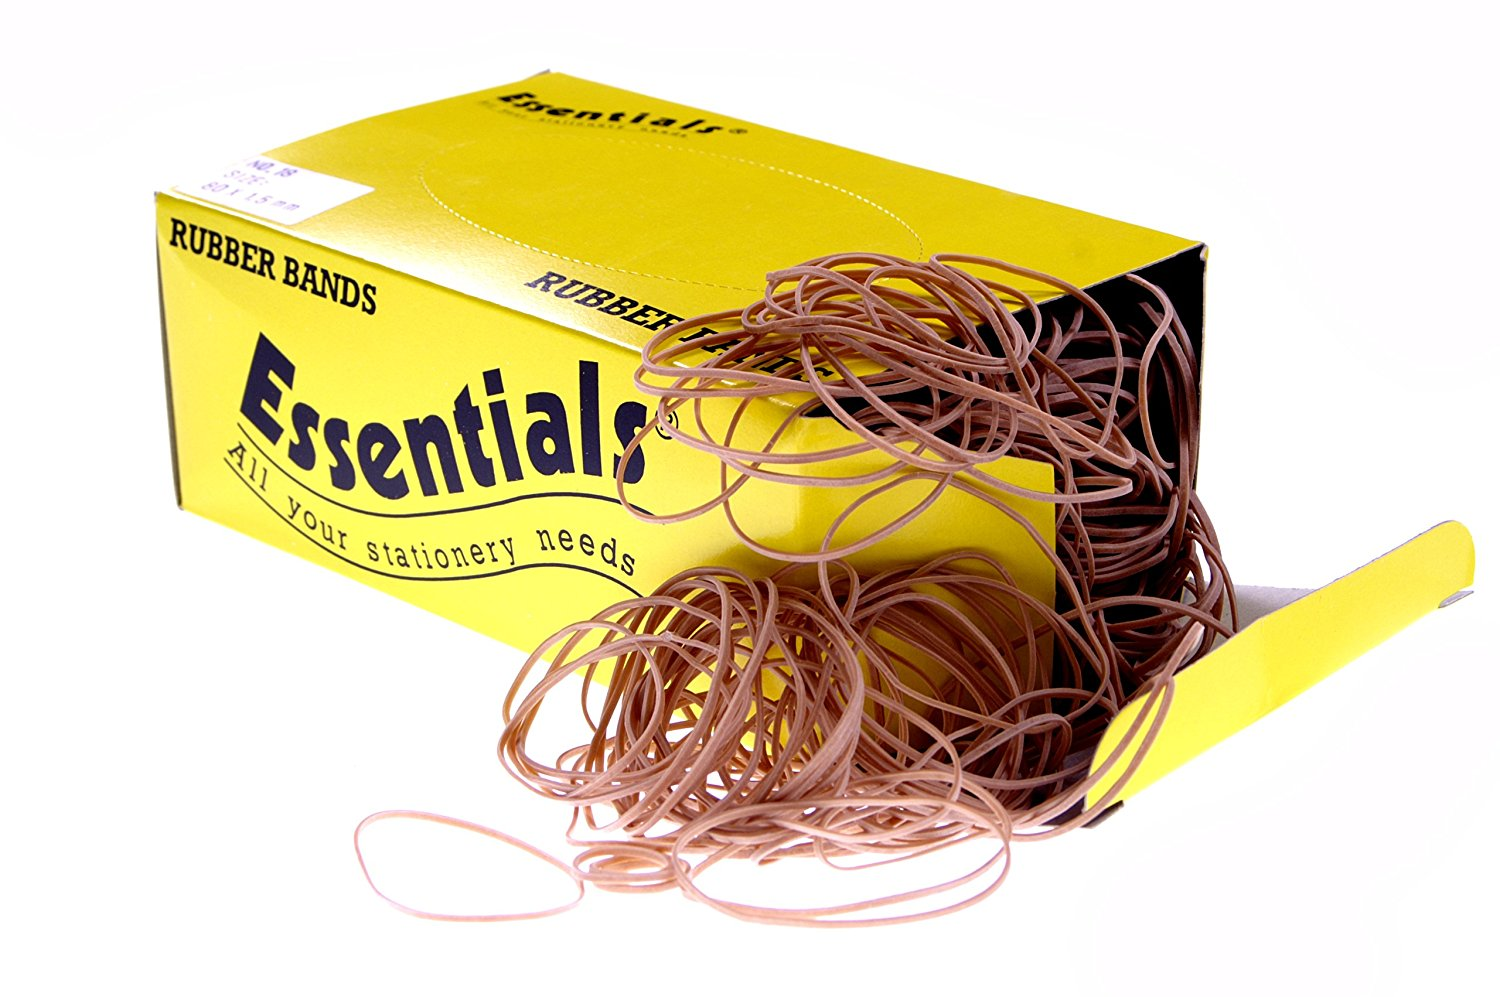 Rubber Bands ValueX Rubber Bands Assorted Sizes Natural 454g